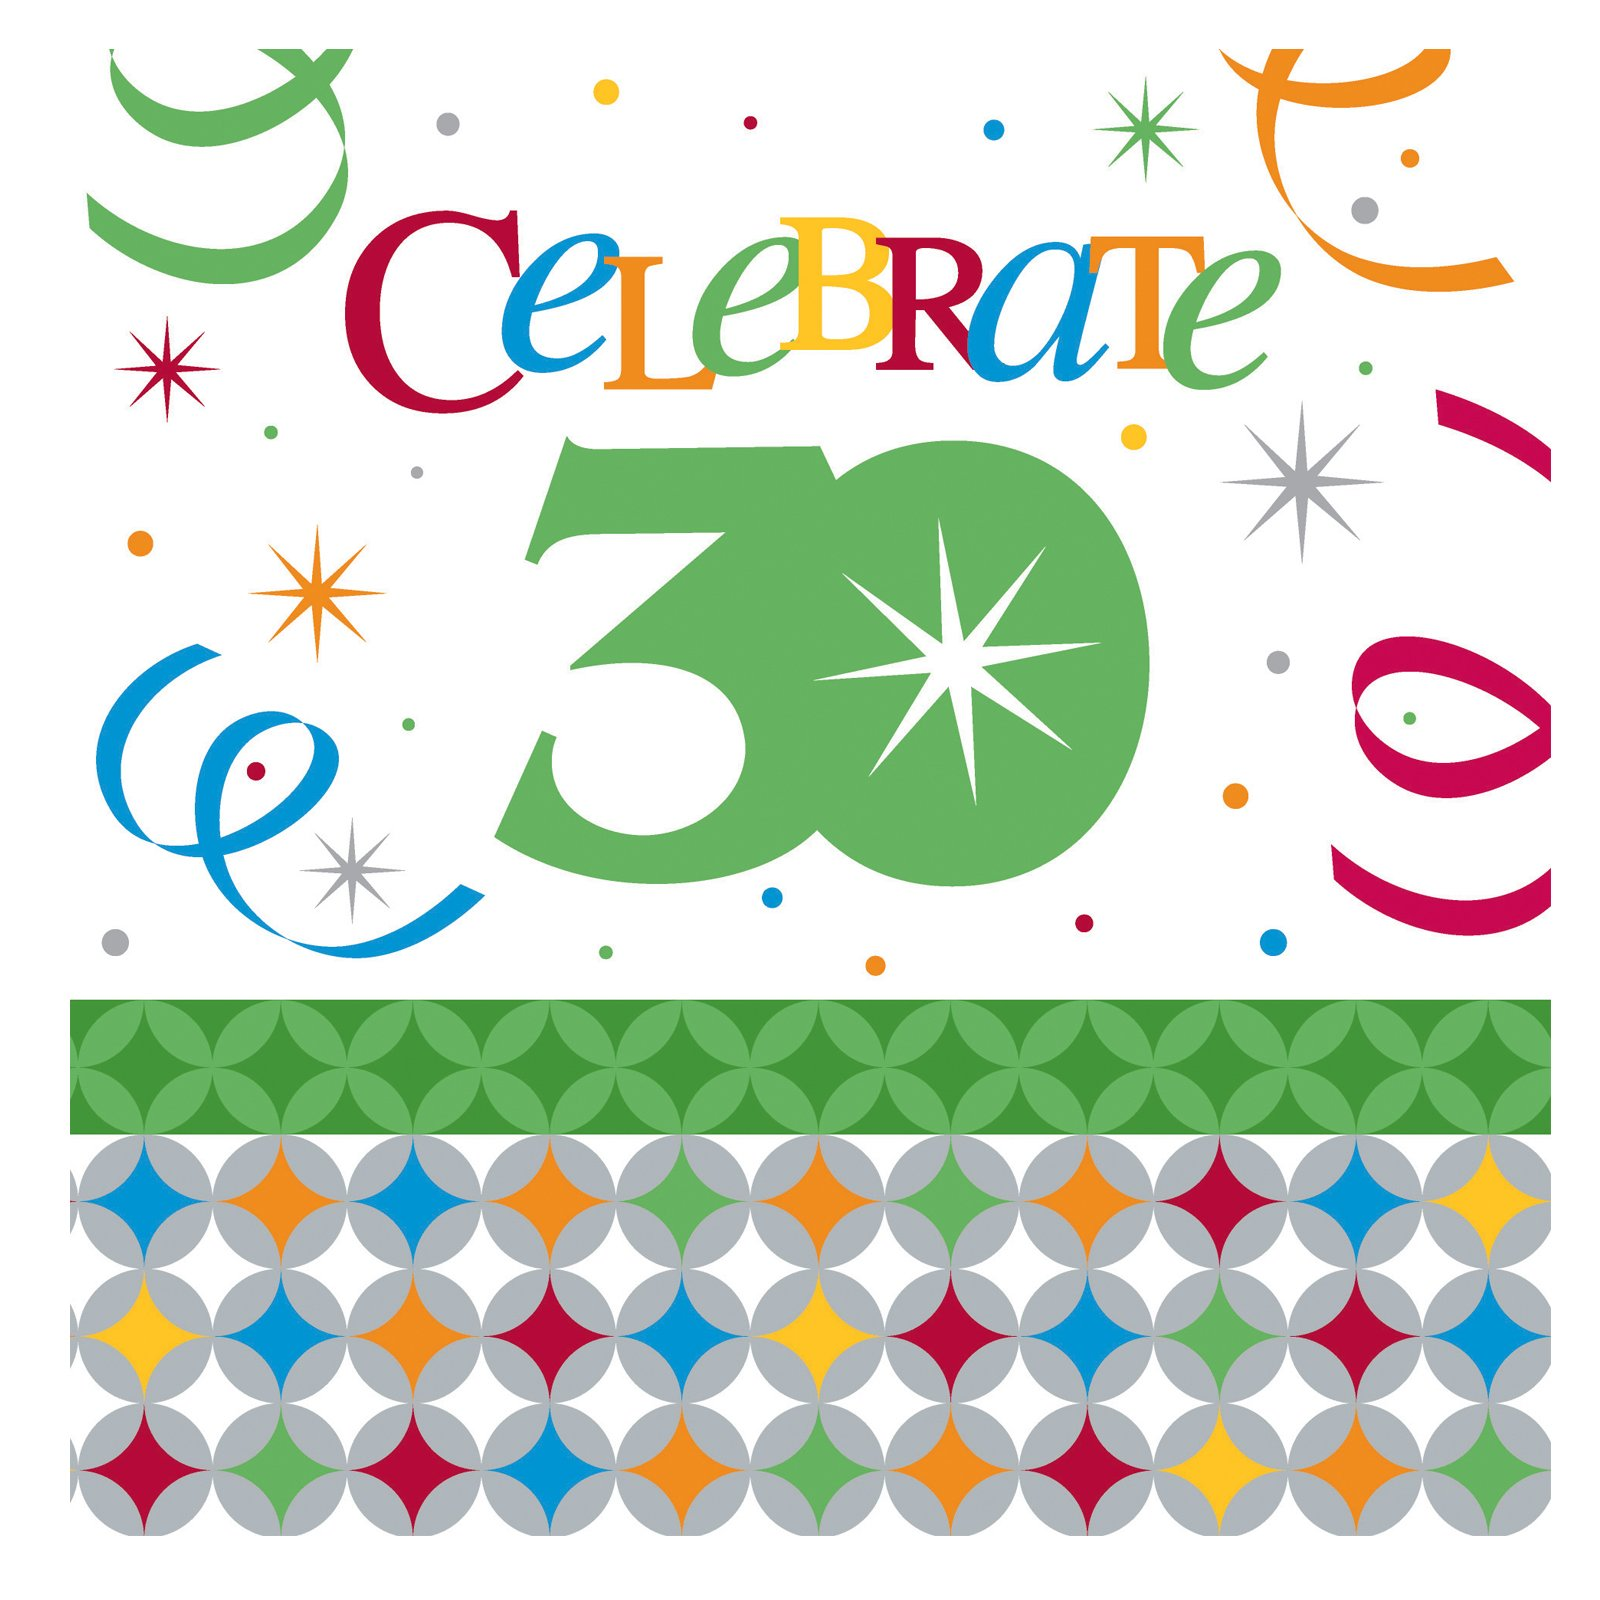 Celebrate In Style 30 Lunch Napkins (16 count)